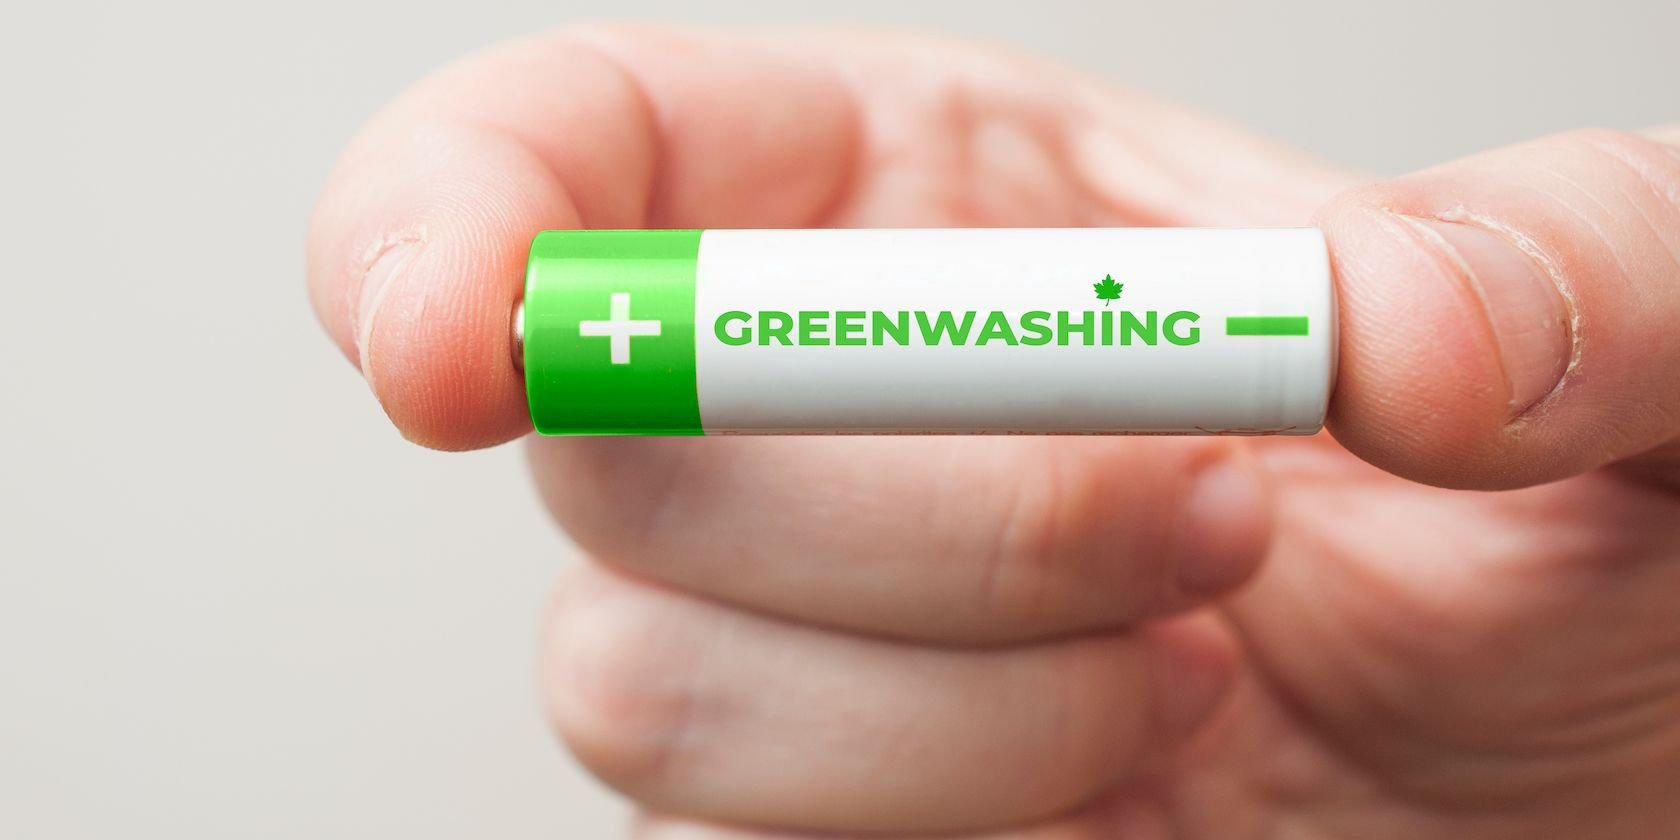 What Is Greenwashing and How Does It Affect Your Tech?